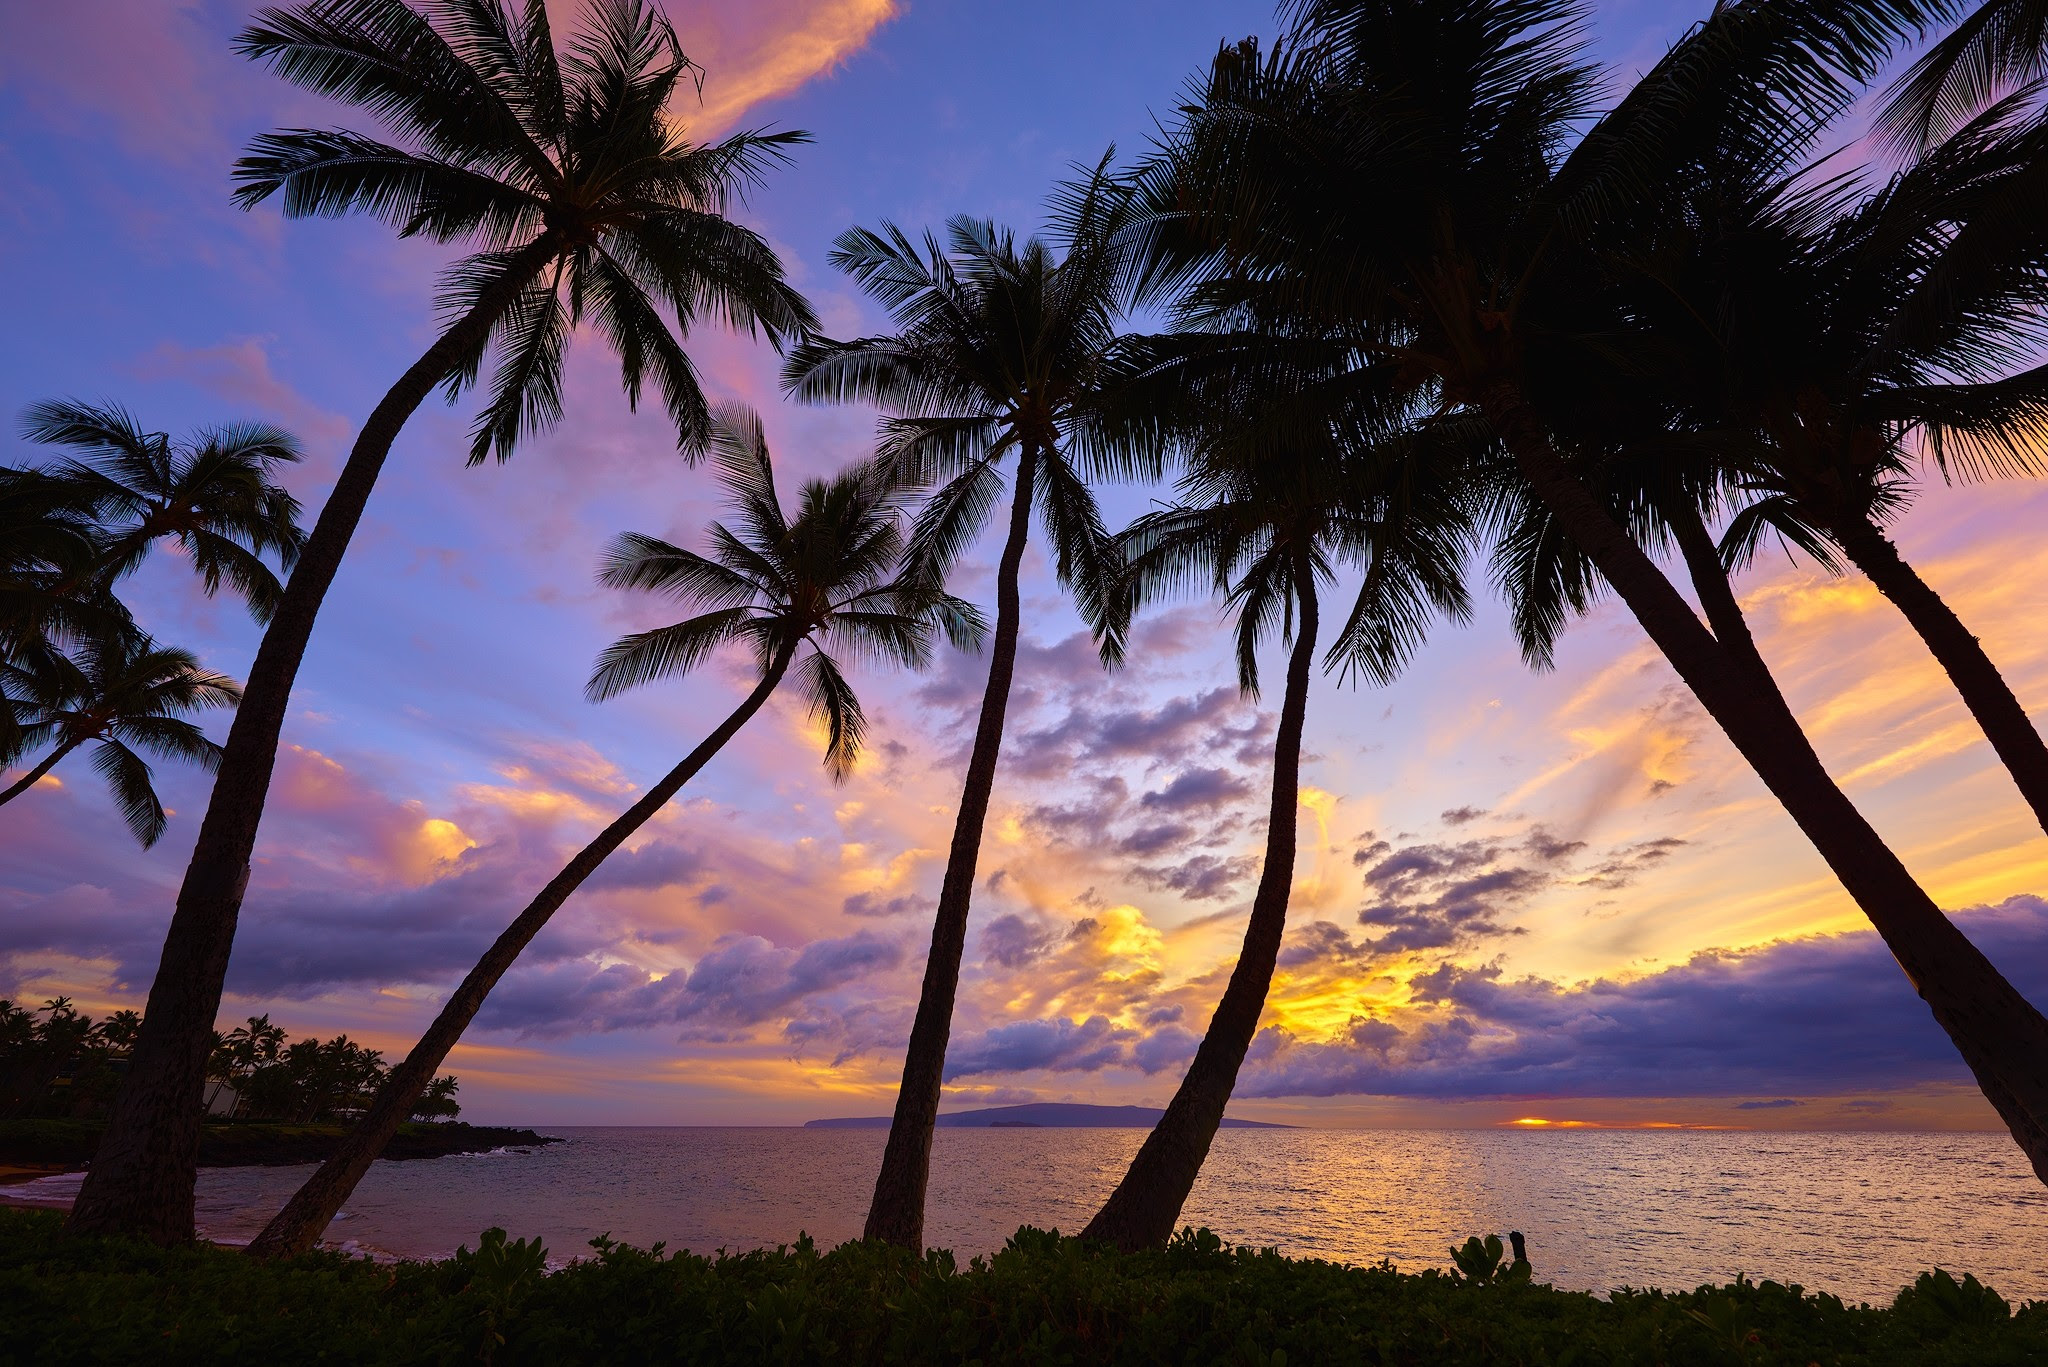 Sunset Palm Trees Wallpaper (62+ images)